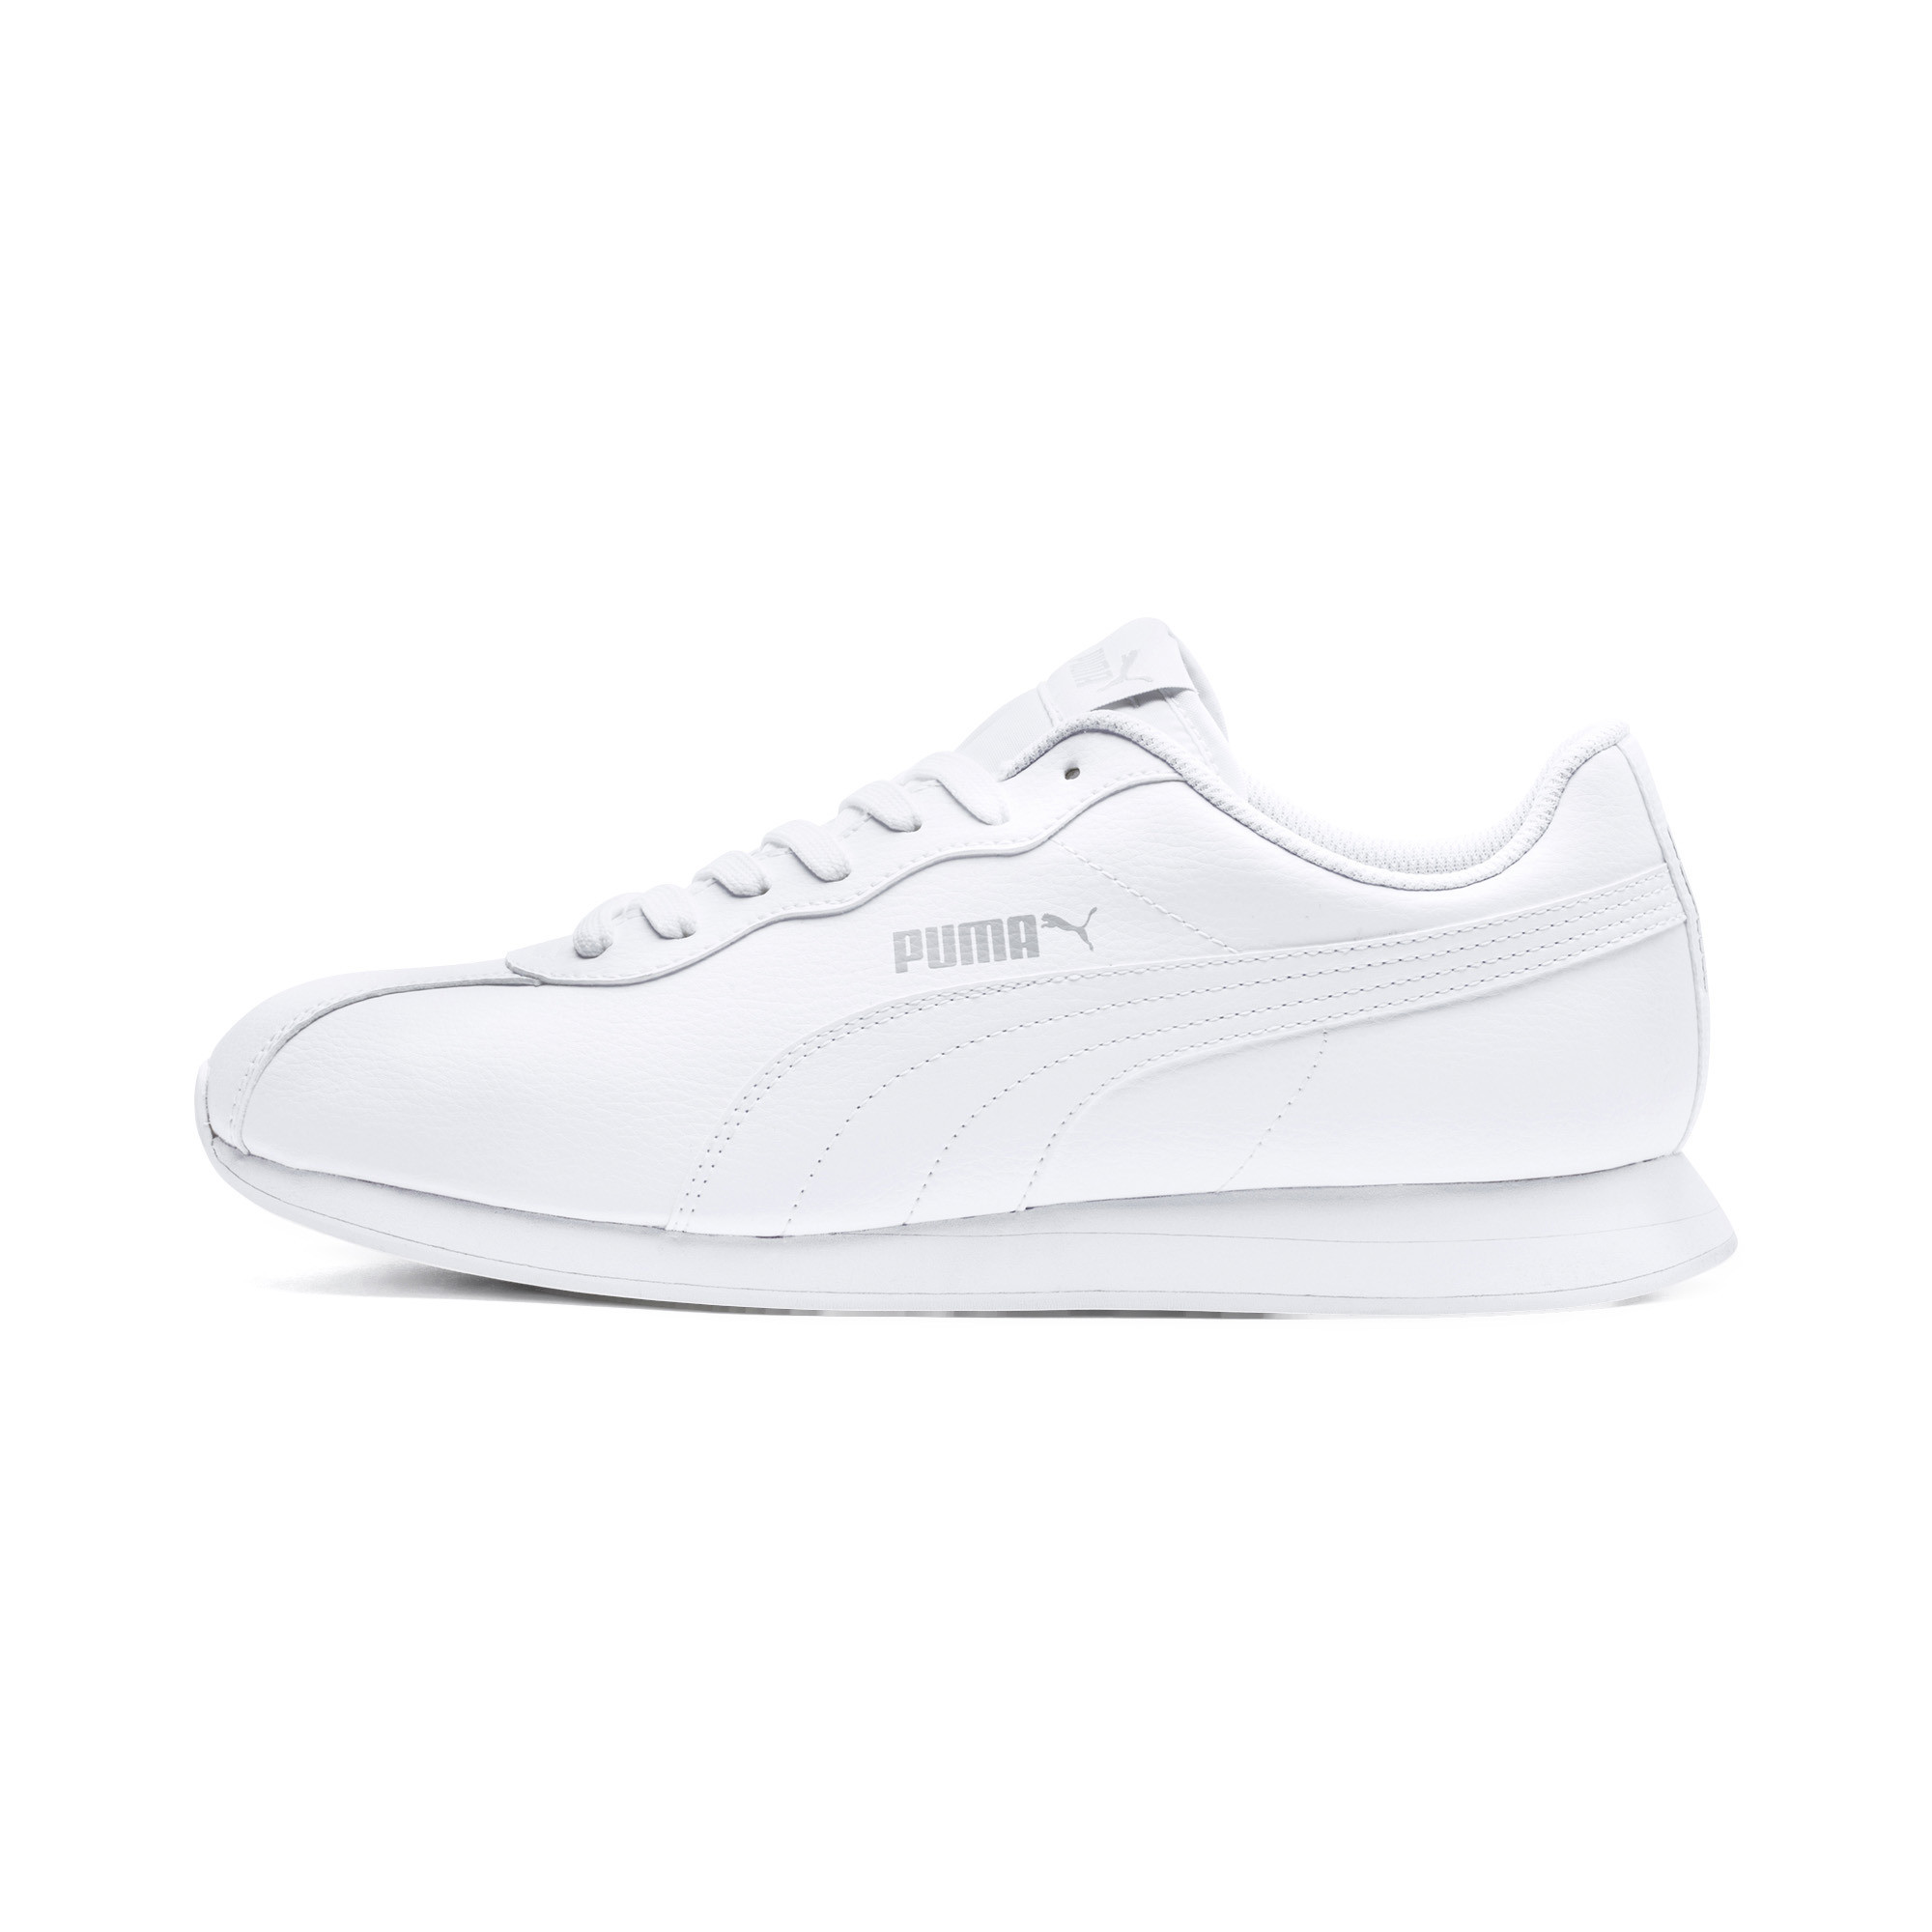 PUMA-Turin-II-Men-039-s-Sneakers-Men-Shoe-Basics thumbnail 9